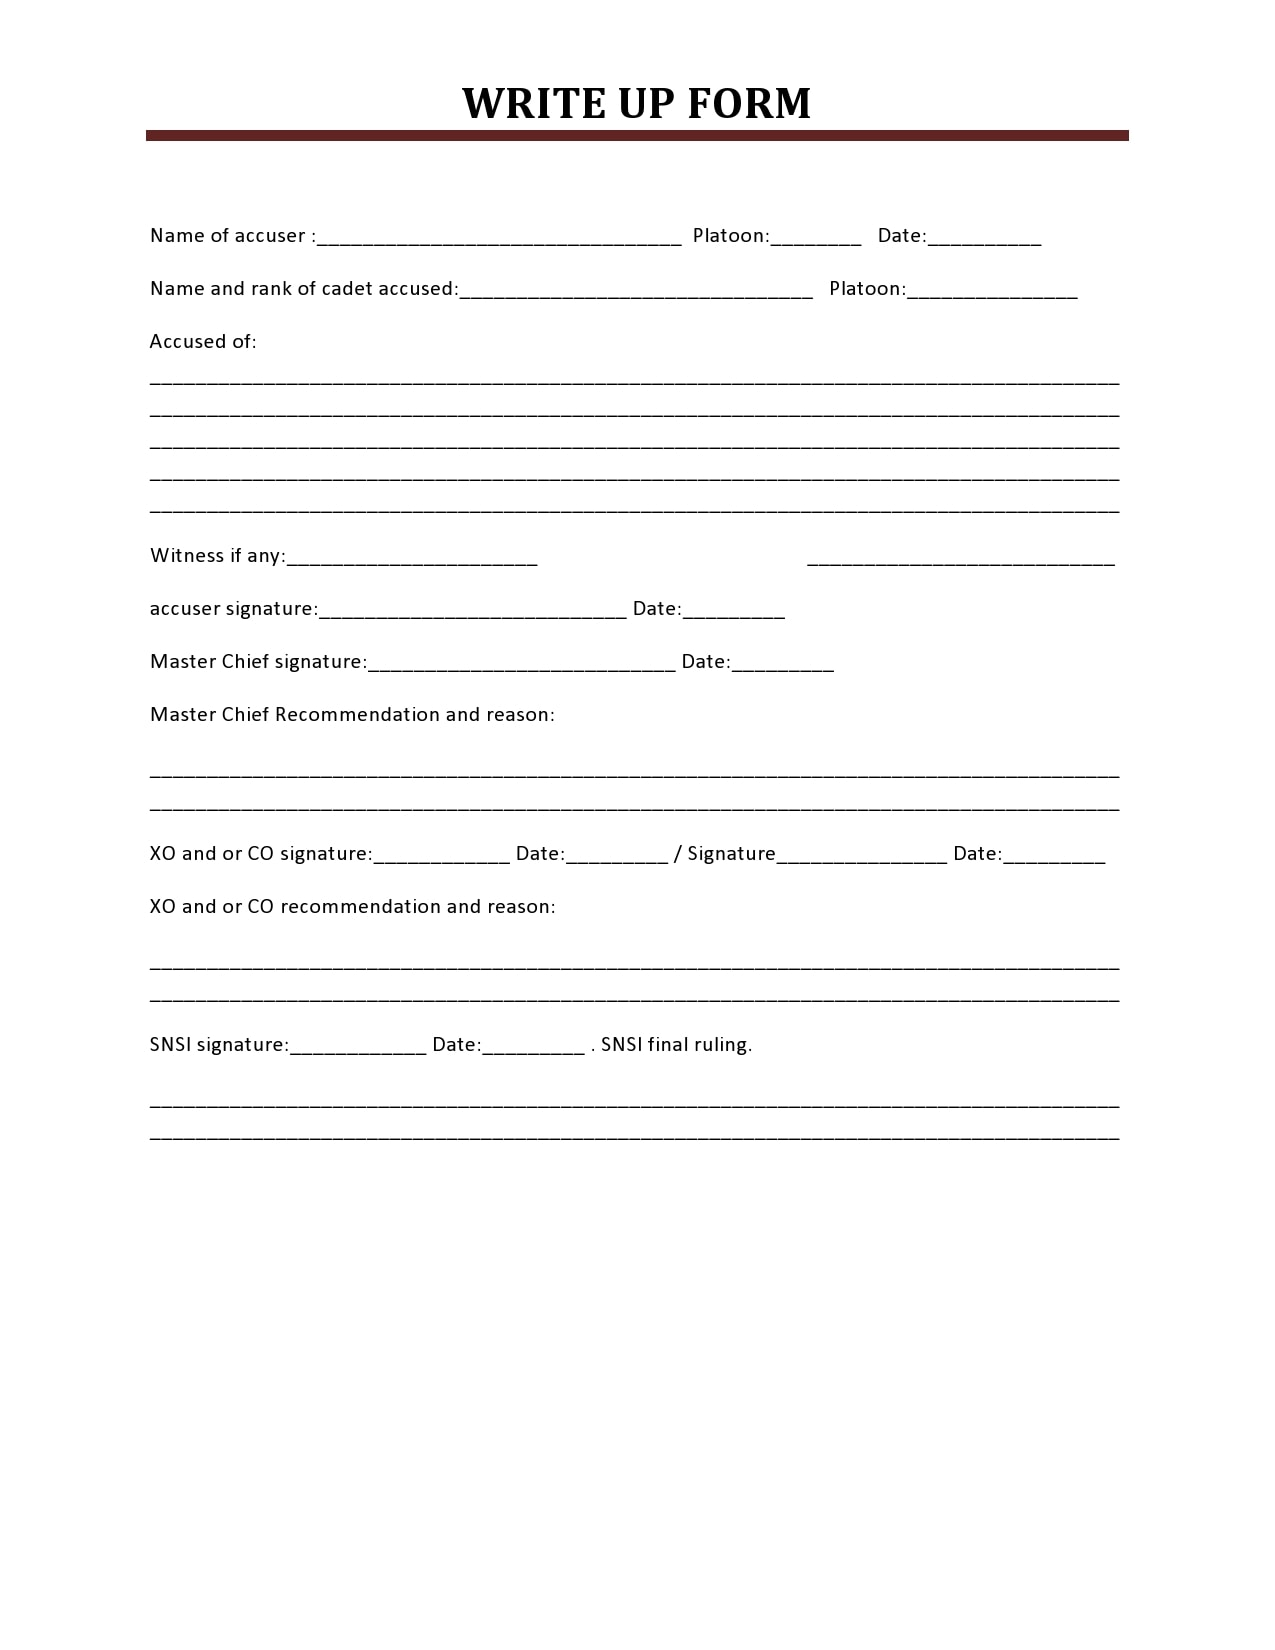 employee write up form 30